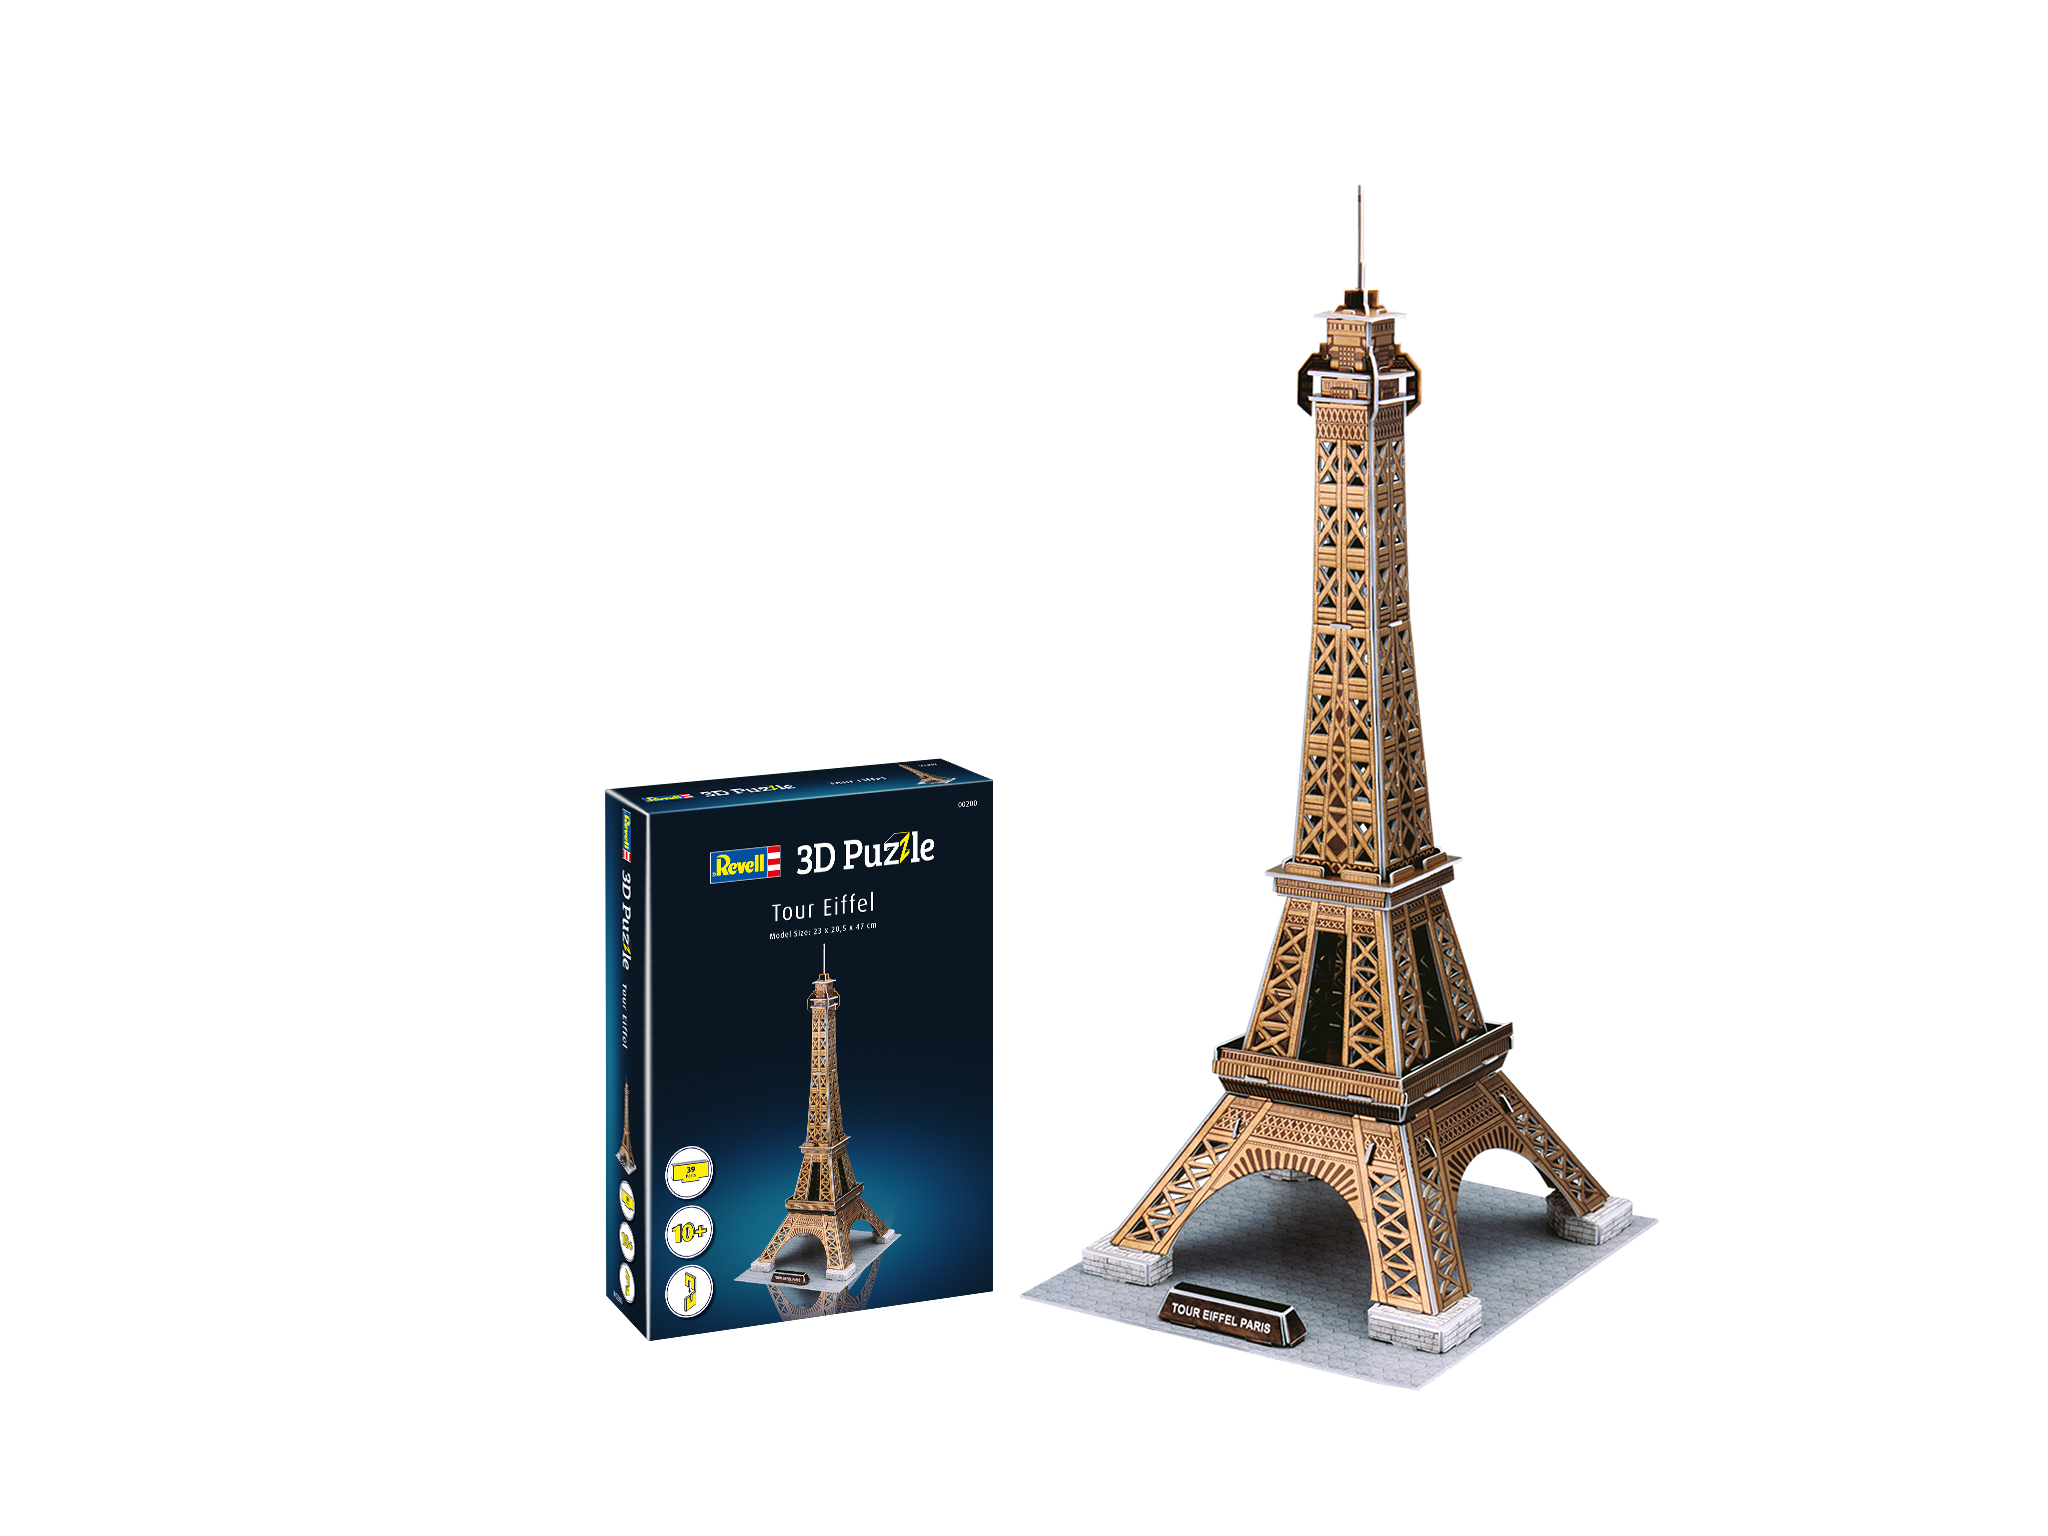 REVELL - Eiffel Tower 3D Puzzle - 39pc jigsaw puzzle